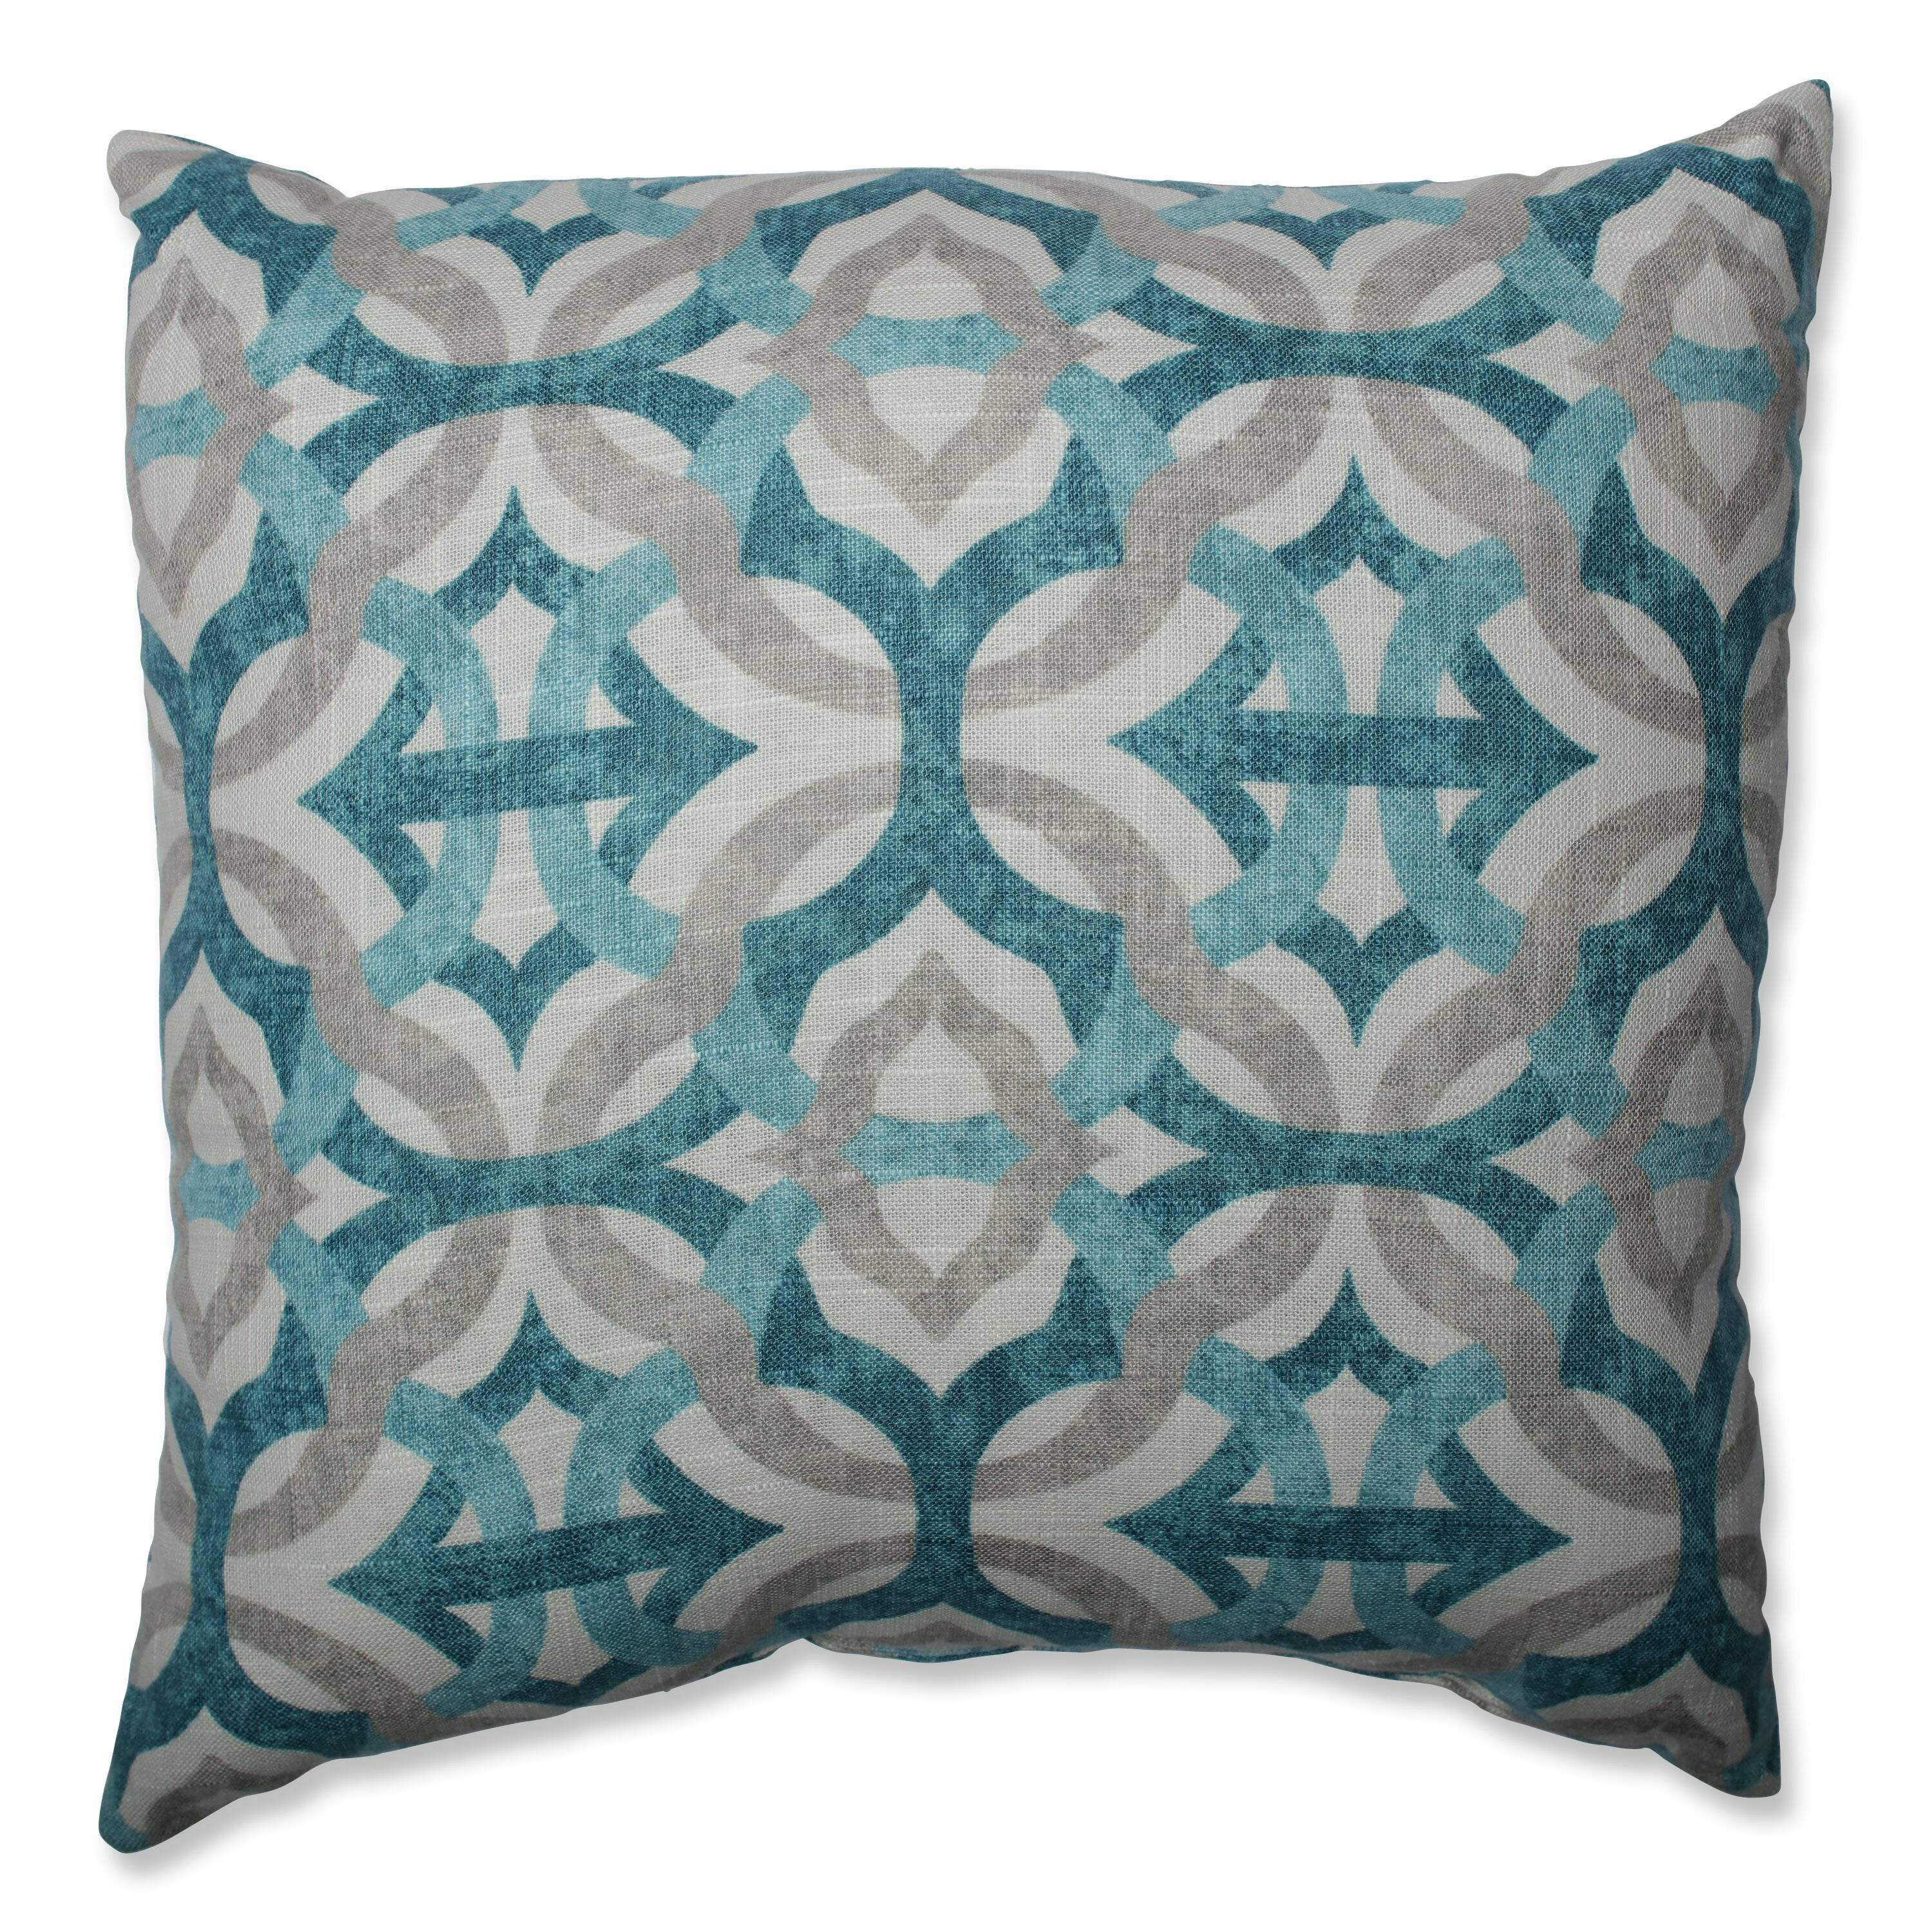 the photo living sofa walmart from room on part deals above in blue frugalbeachhouse dsc trellis pillow grey are beige homesense our first starfish and pillows